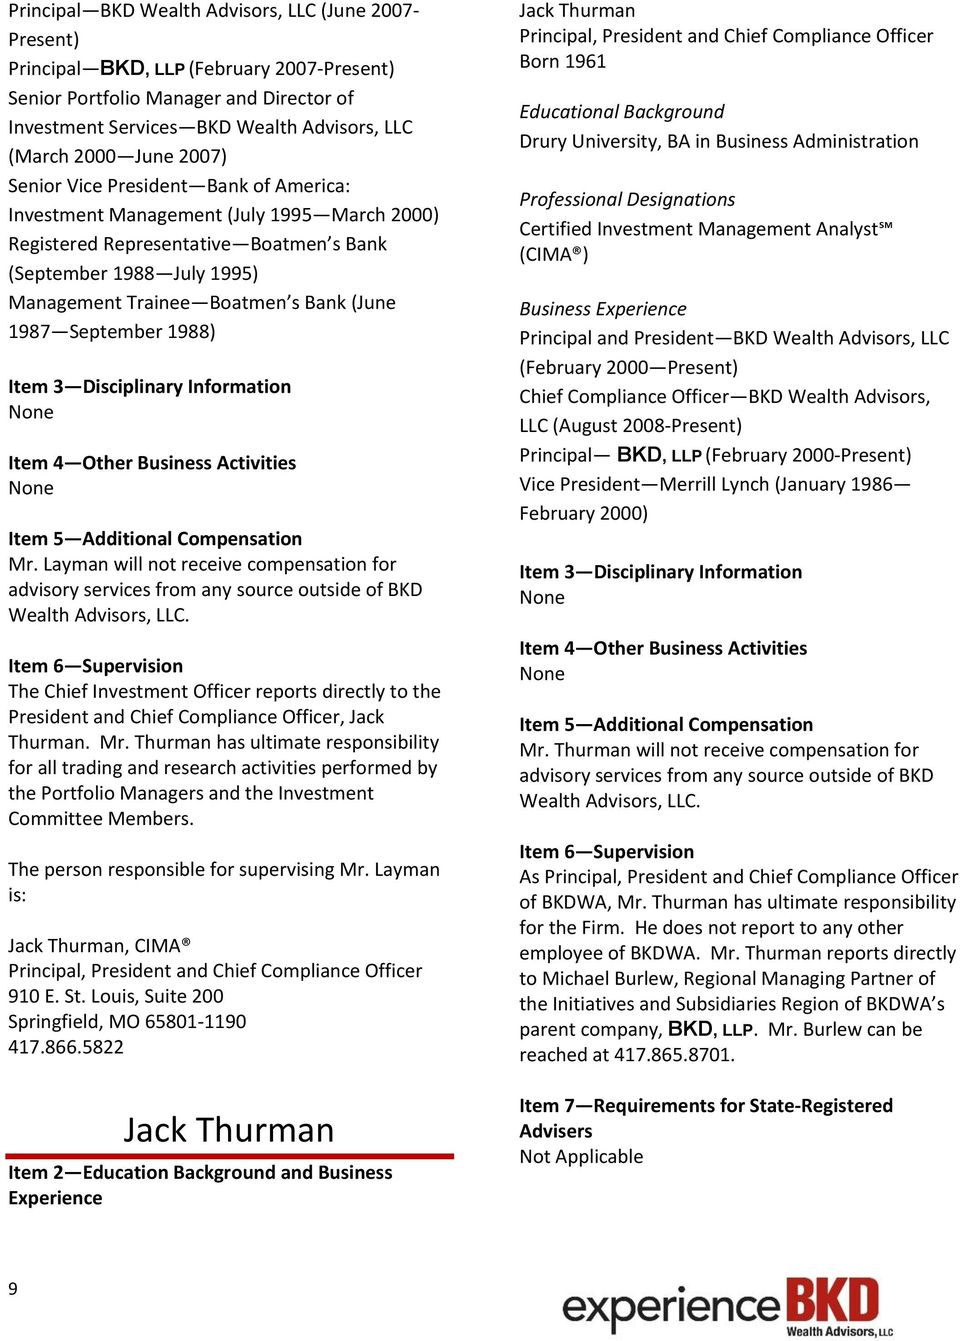 (June 1987 September 1988) Mr. Layman will not receive compensation for The Chief Investment Officer reports directly to the President and Chief Compliance Officer, Jack Thurman. Mr. Thurman has ultimate responsibility for all trading and research activities performed by the Portfolio Managers and the Investment Committee Members.